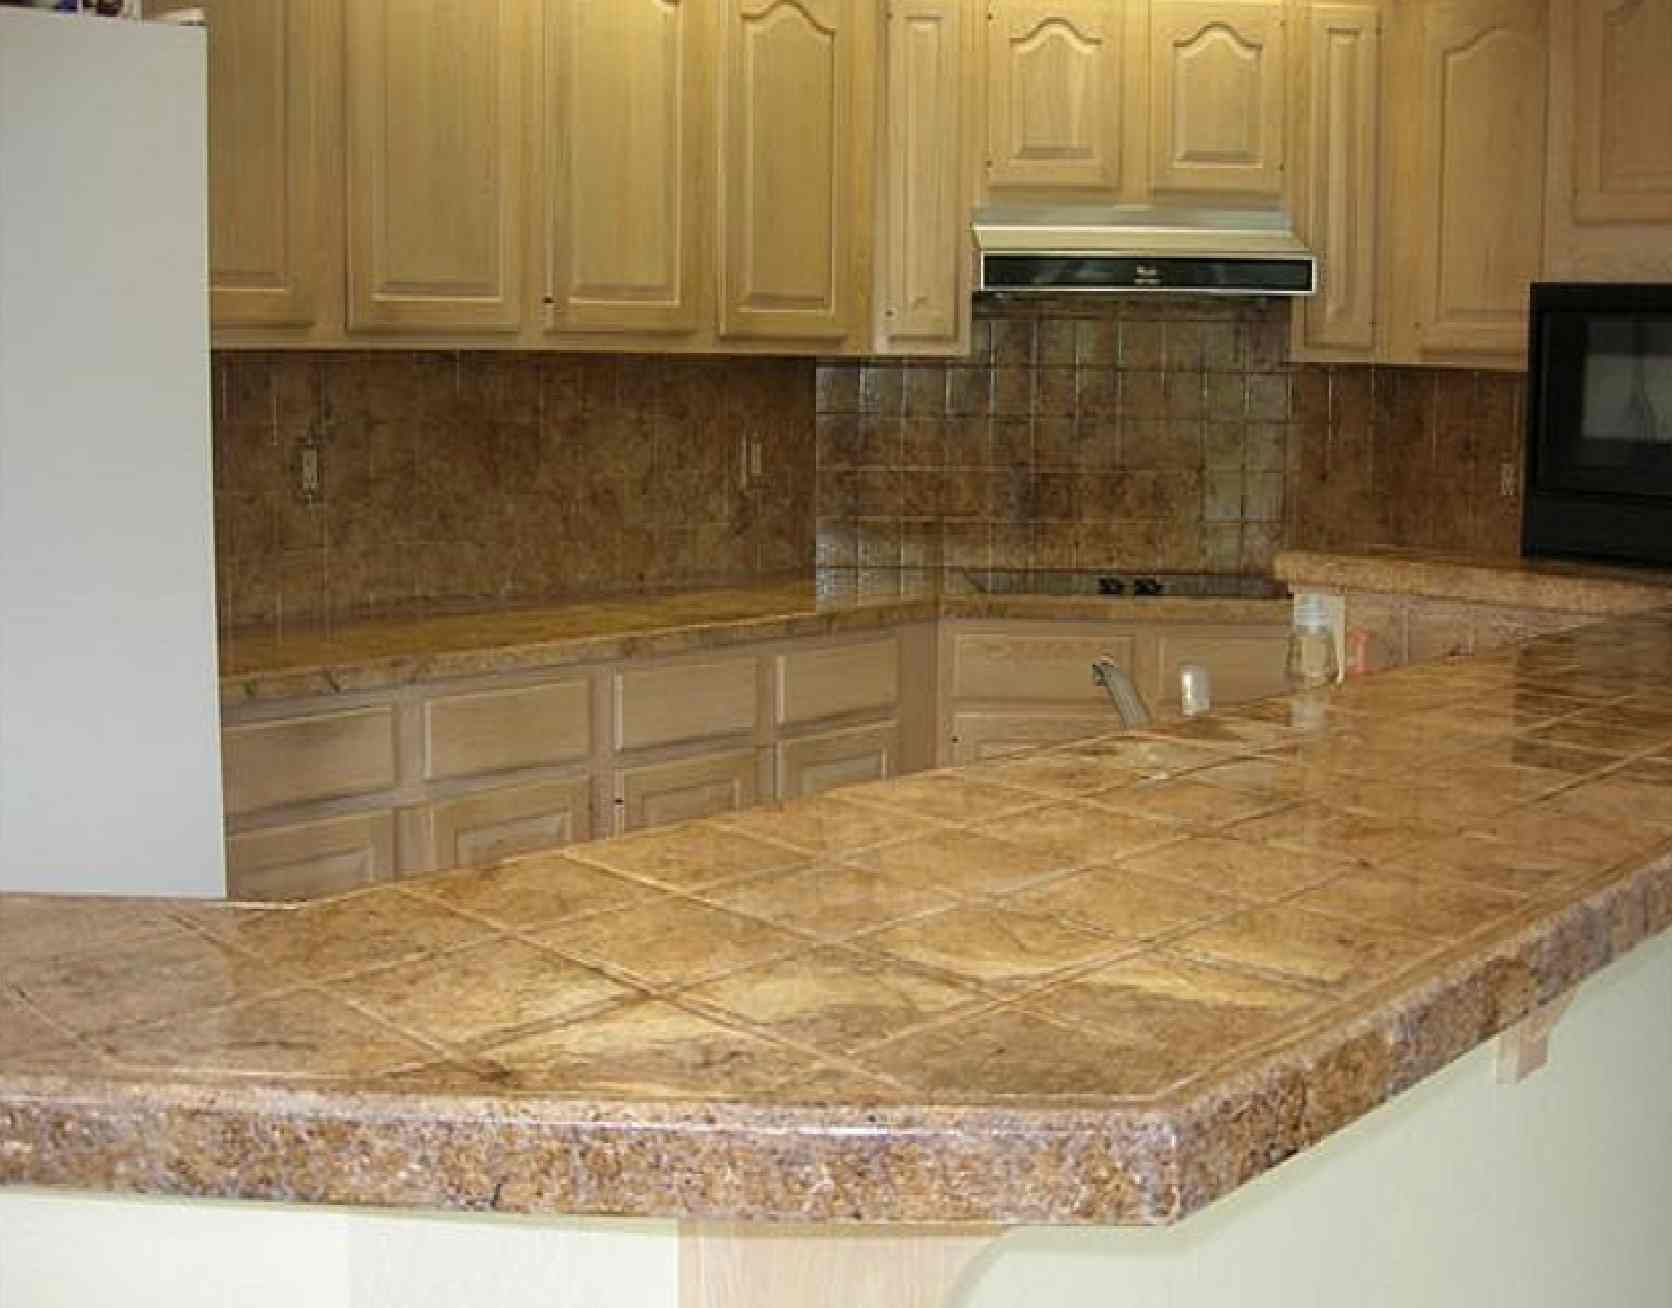 kitchen counter ideas kitchen countertop ideas Tile Kitchen Countertop Design